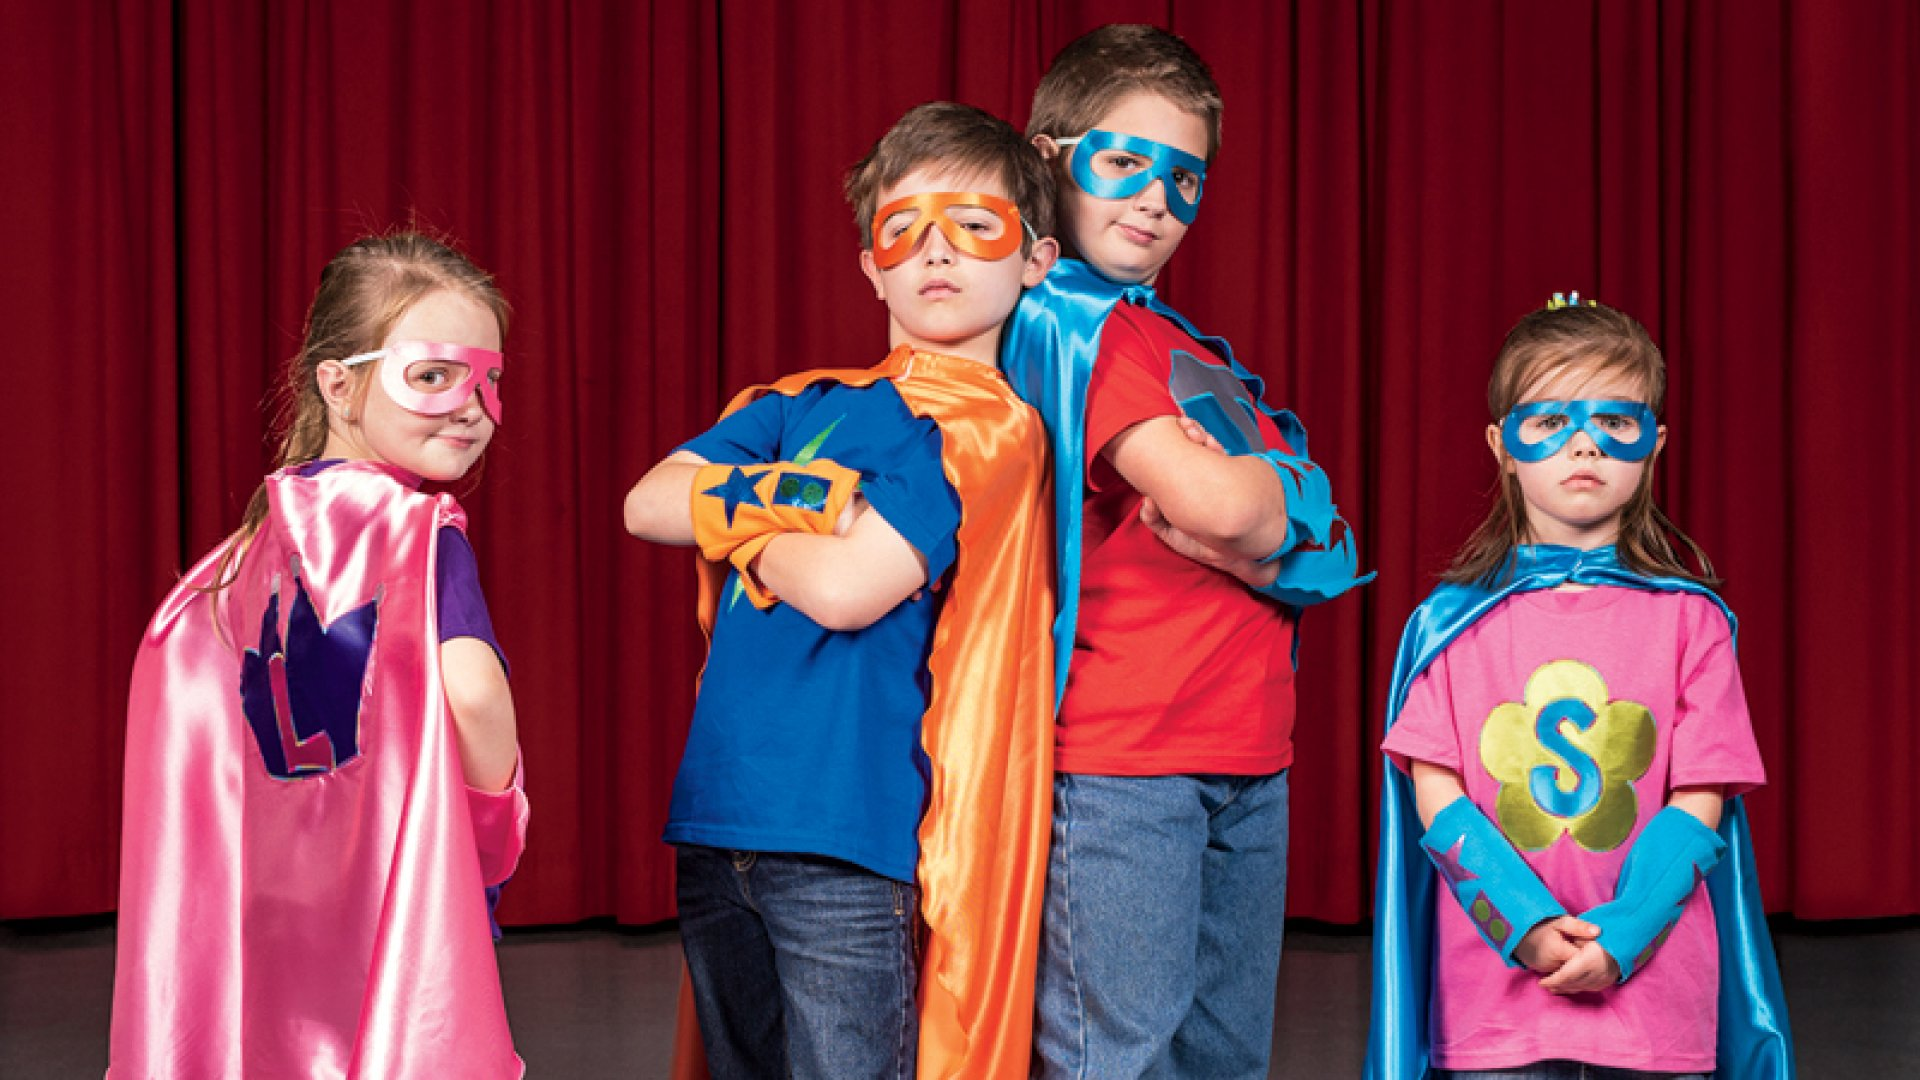 The Founder of Superfly Kids Used $100 to Turn Children Into Superheroes